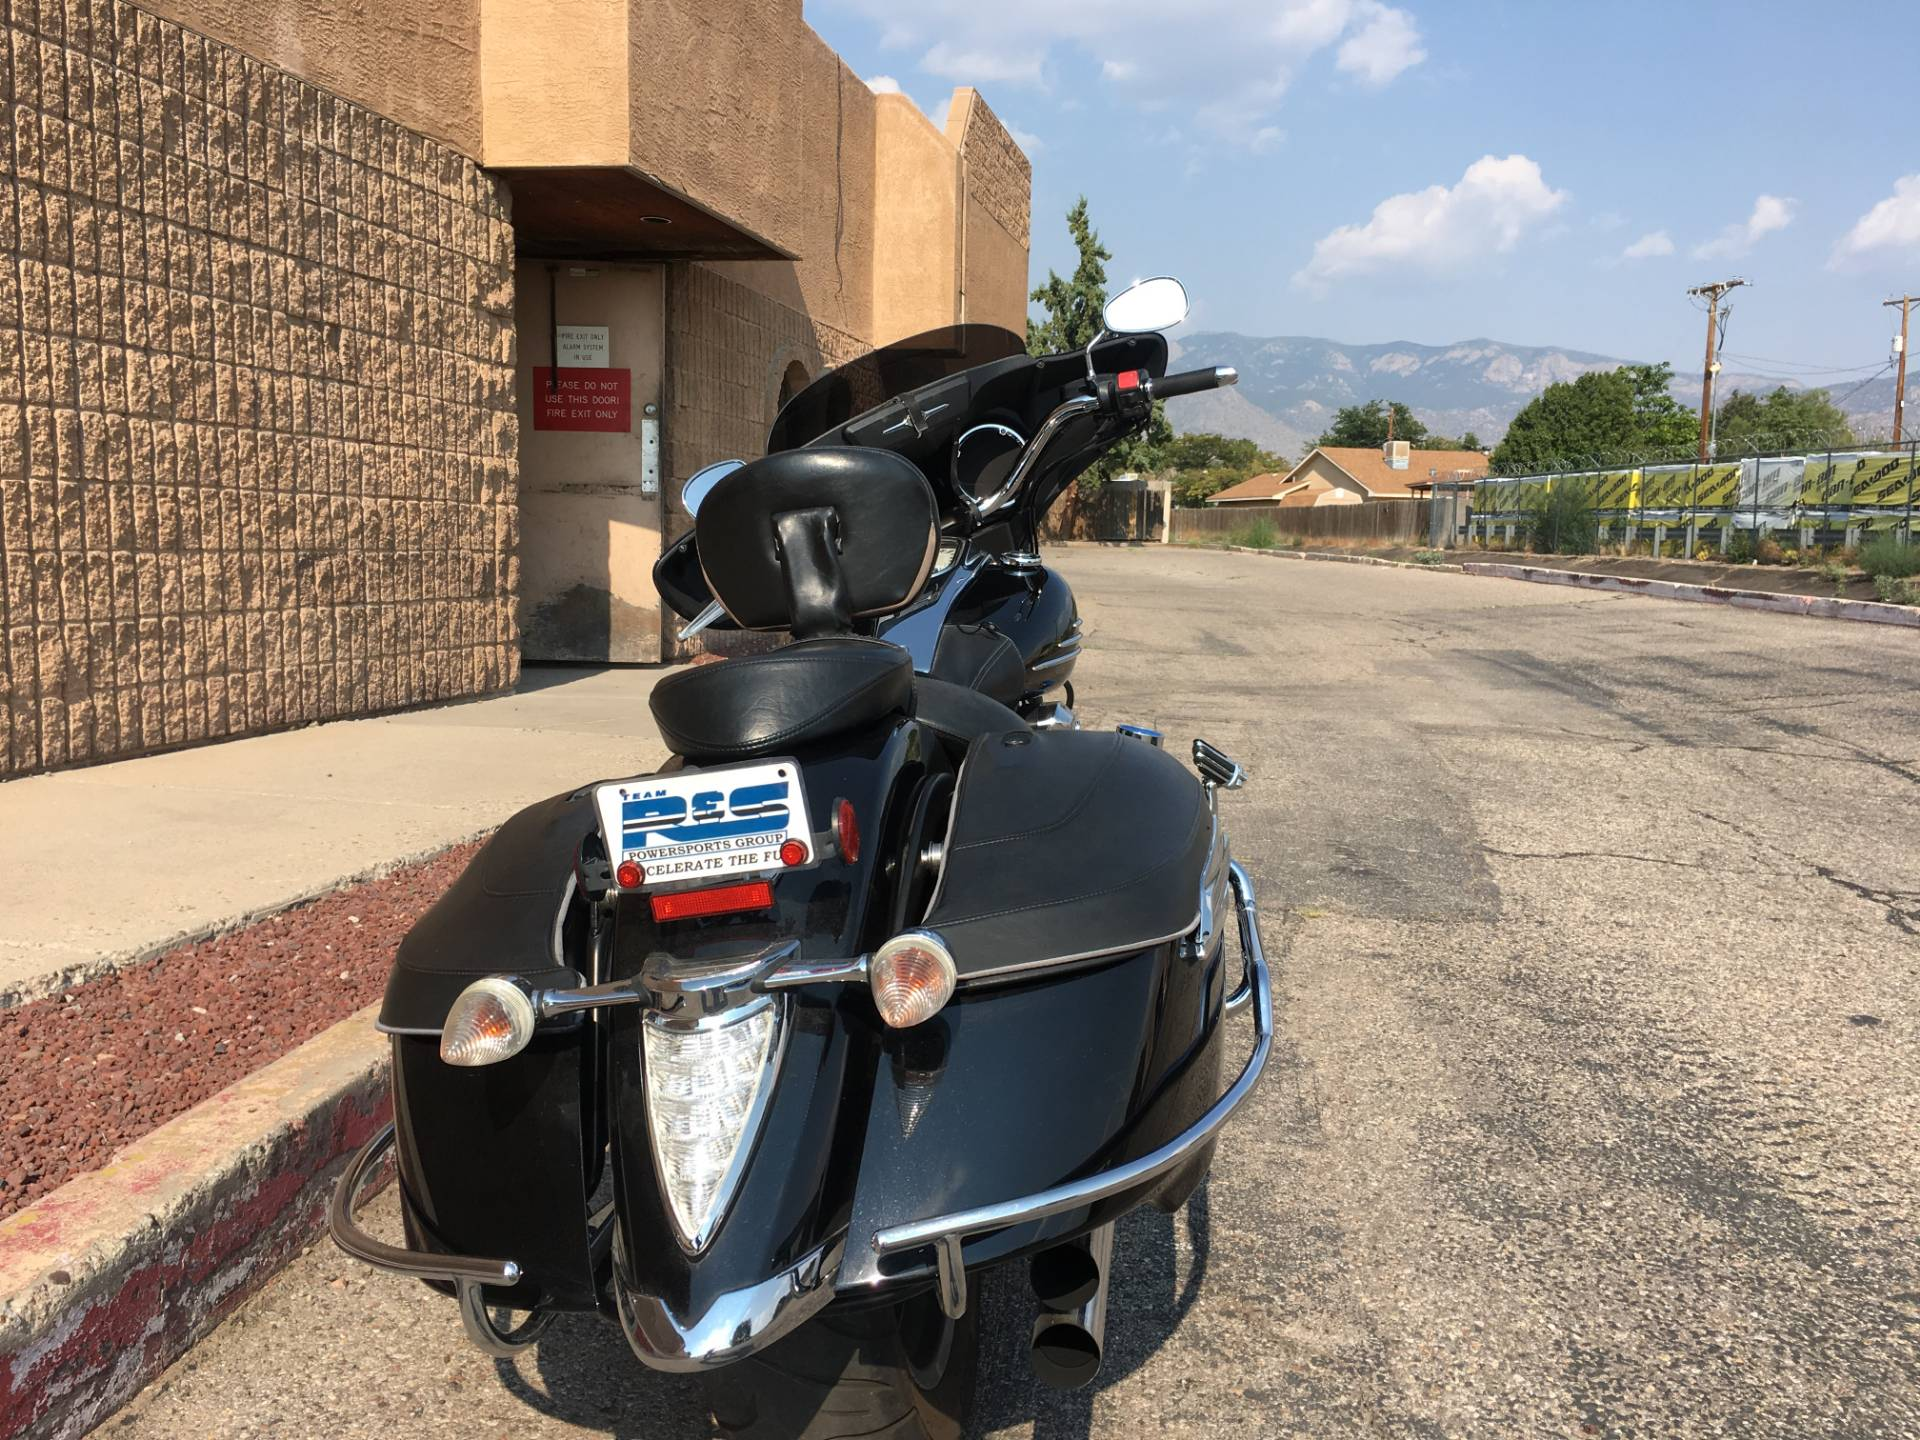 2010 Yamaha Stratoliner Deluxe in Albuquerque, New Mexico